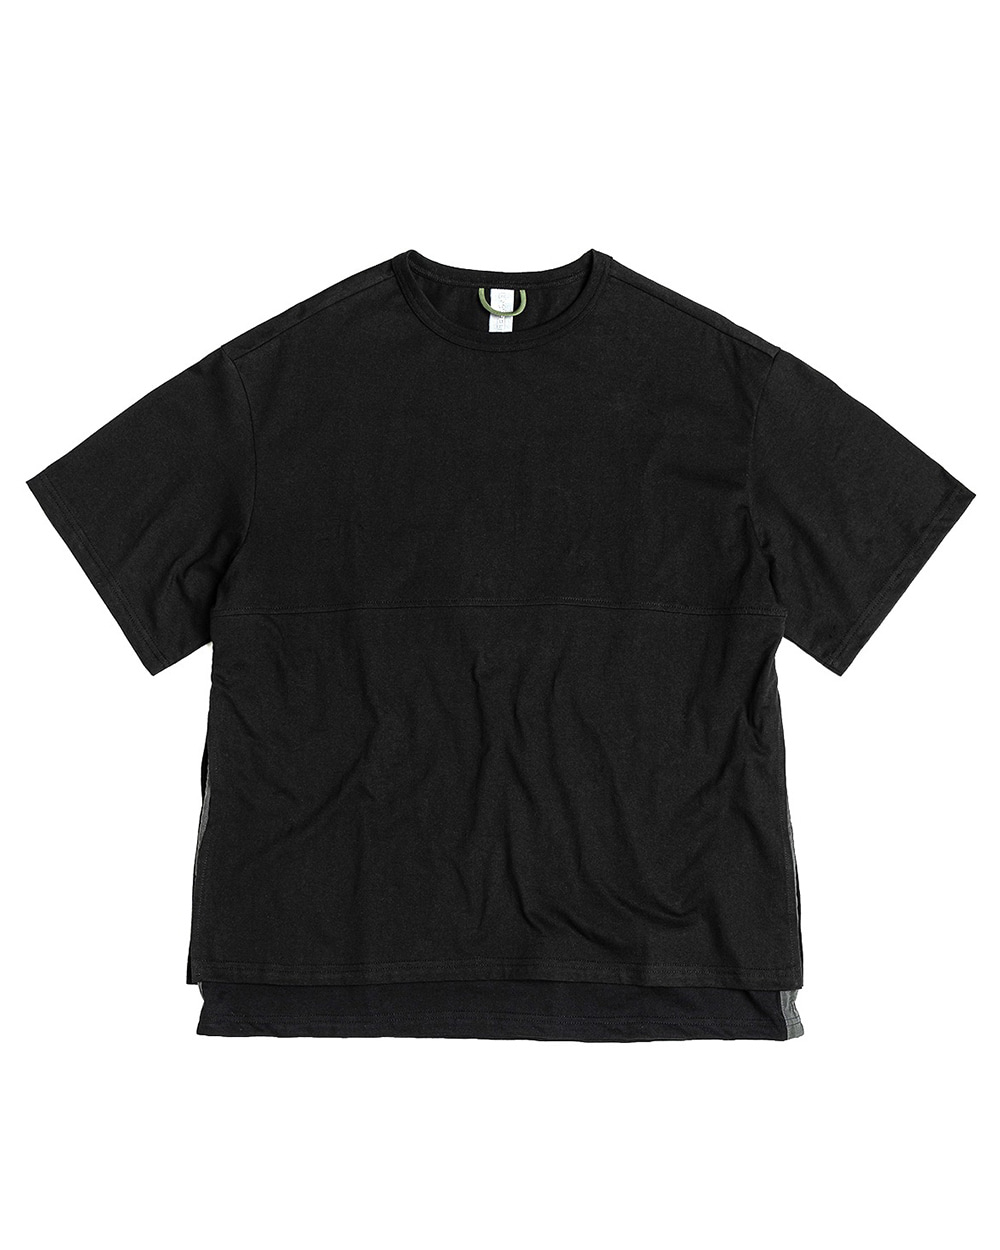 언어펙티드 LAYERED T-SHIRT (Black)